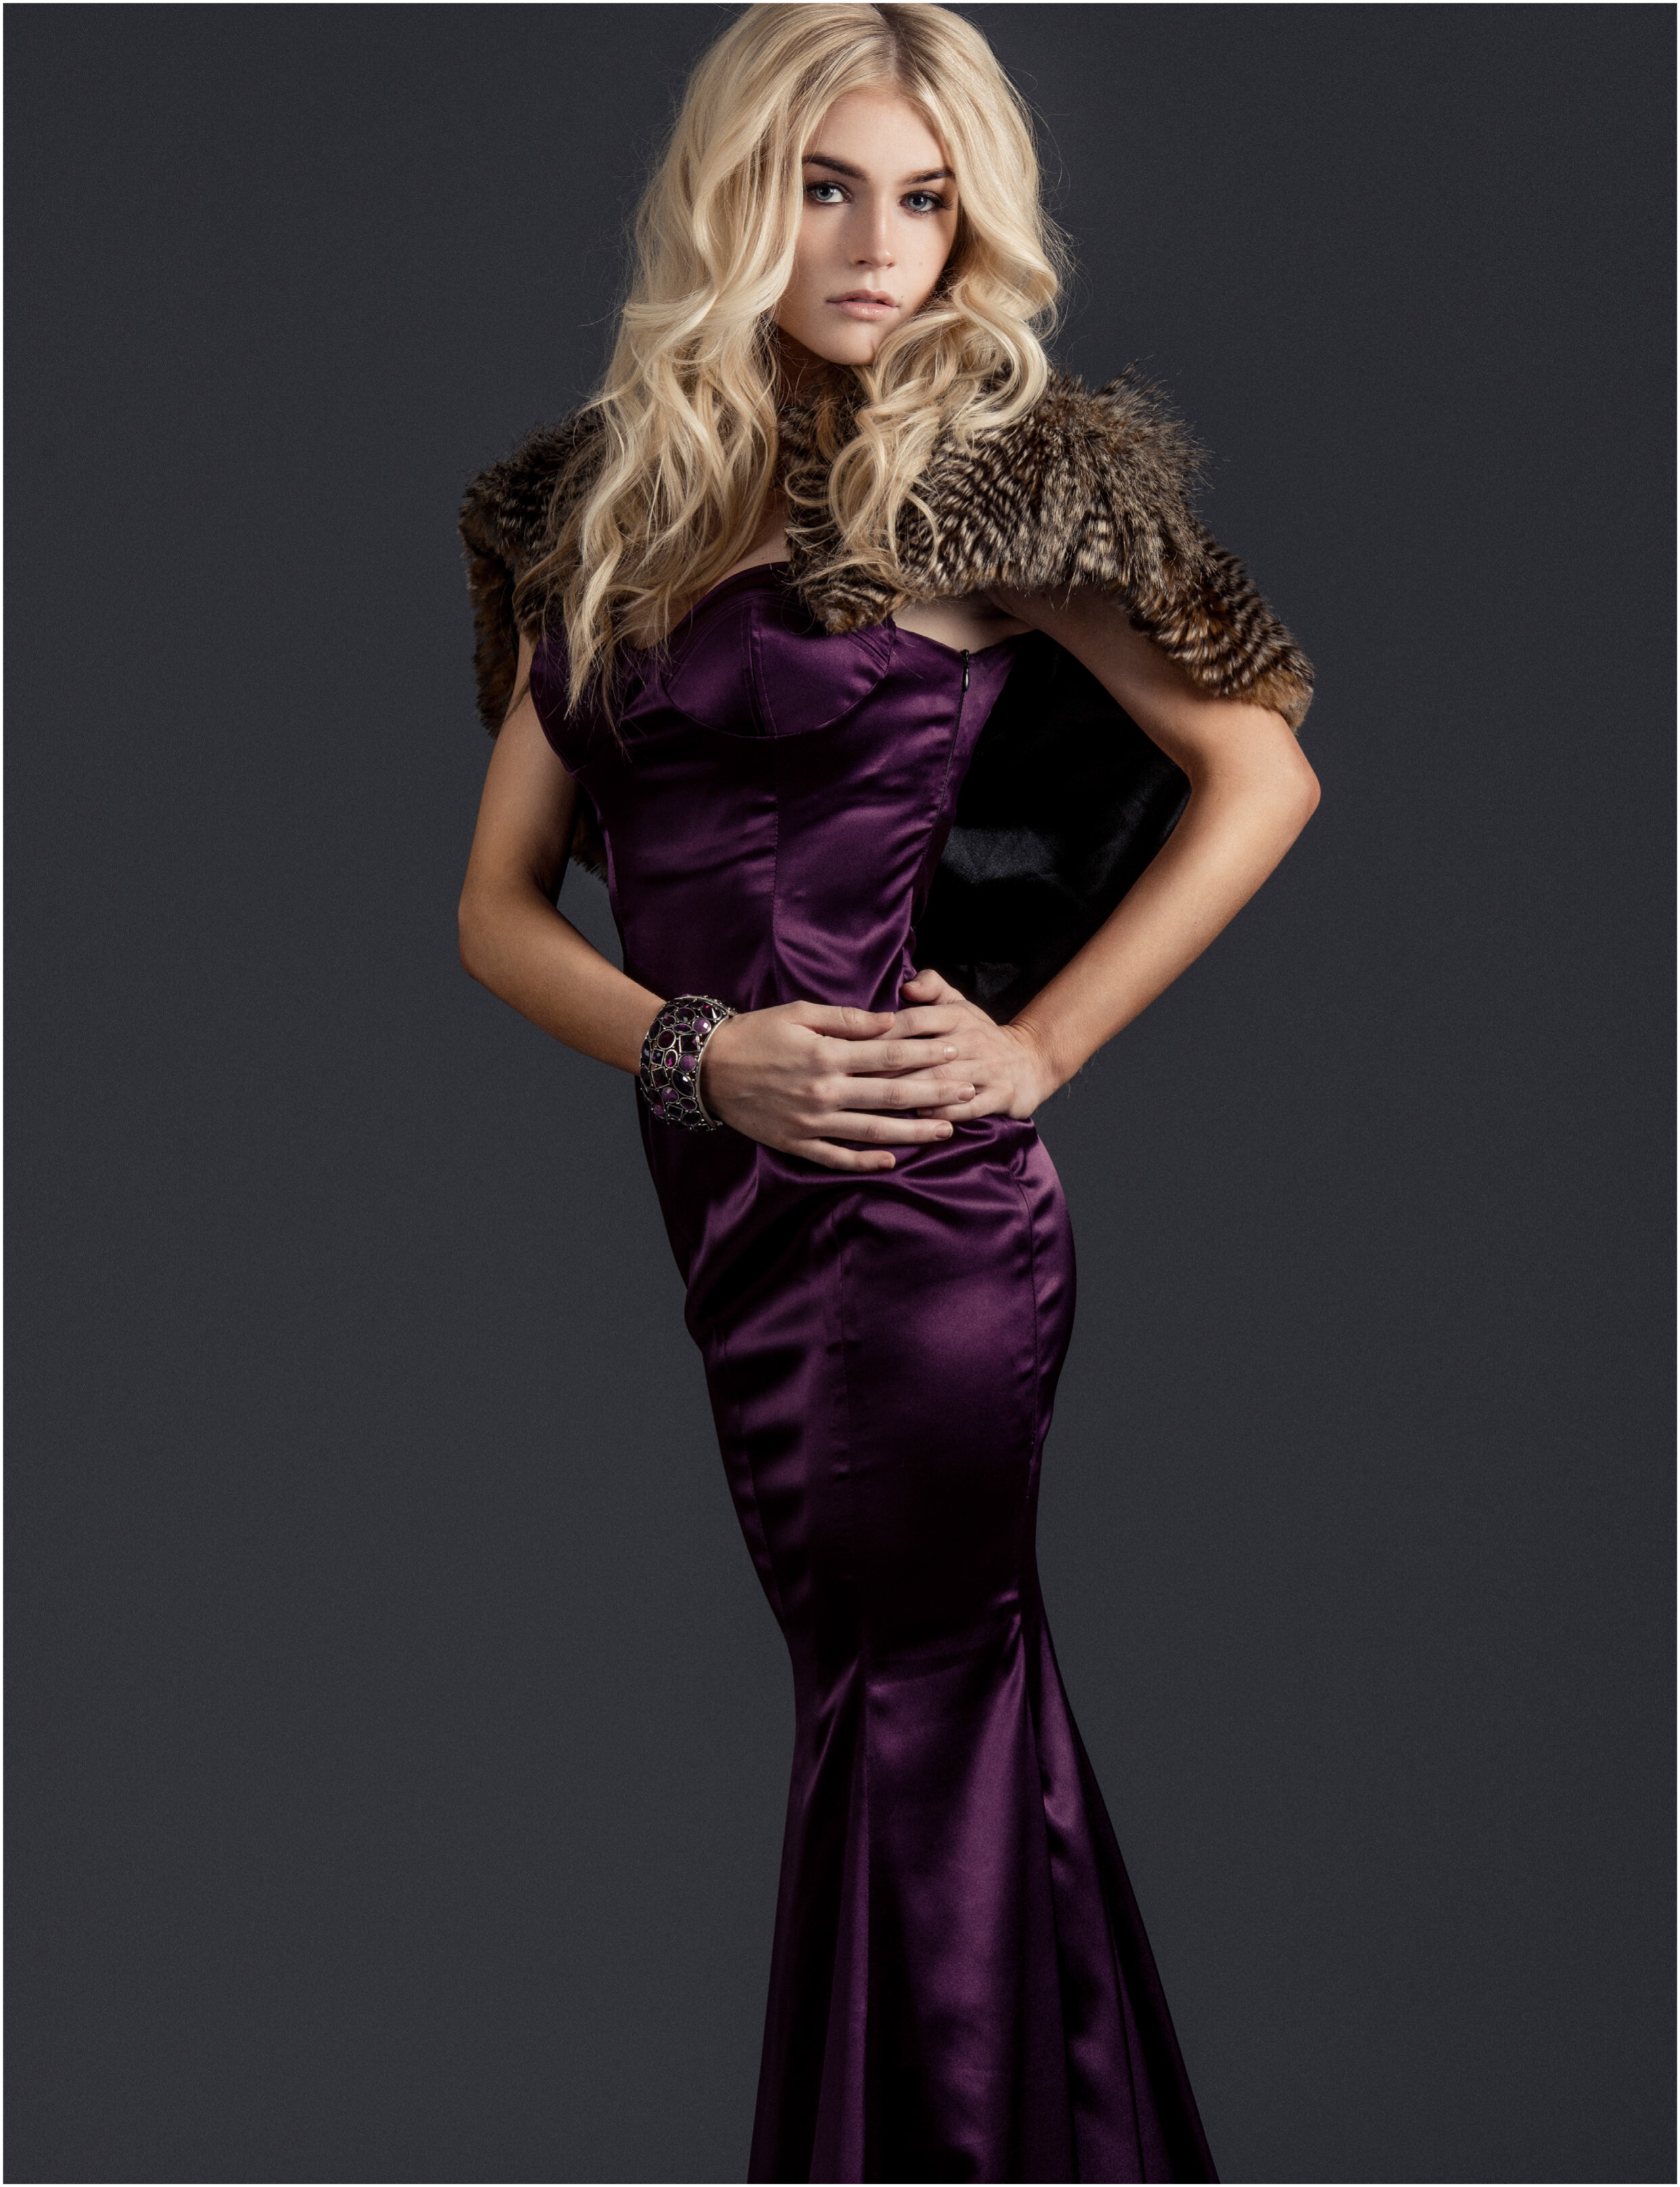 Alis Fashion Design one of a kind purple couture bustier evening gown featured in Zephyr Magazine January Issue 2015.jpg